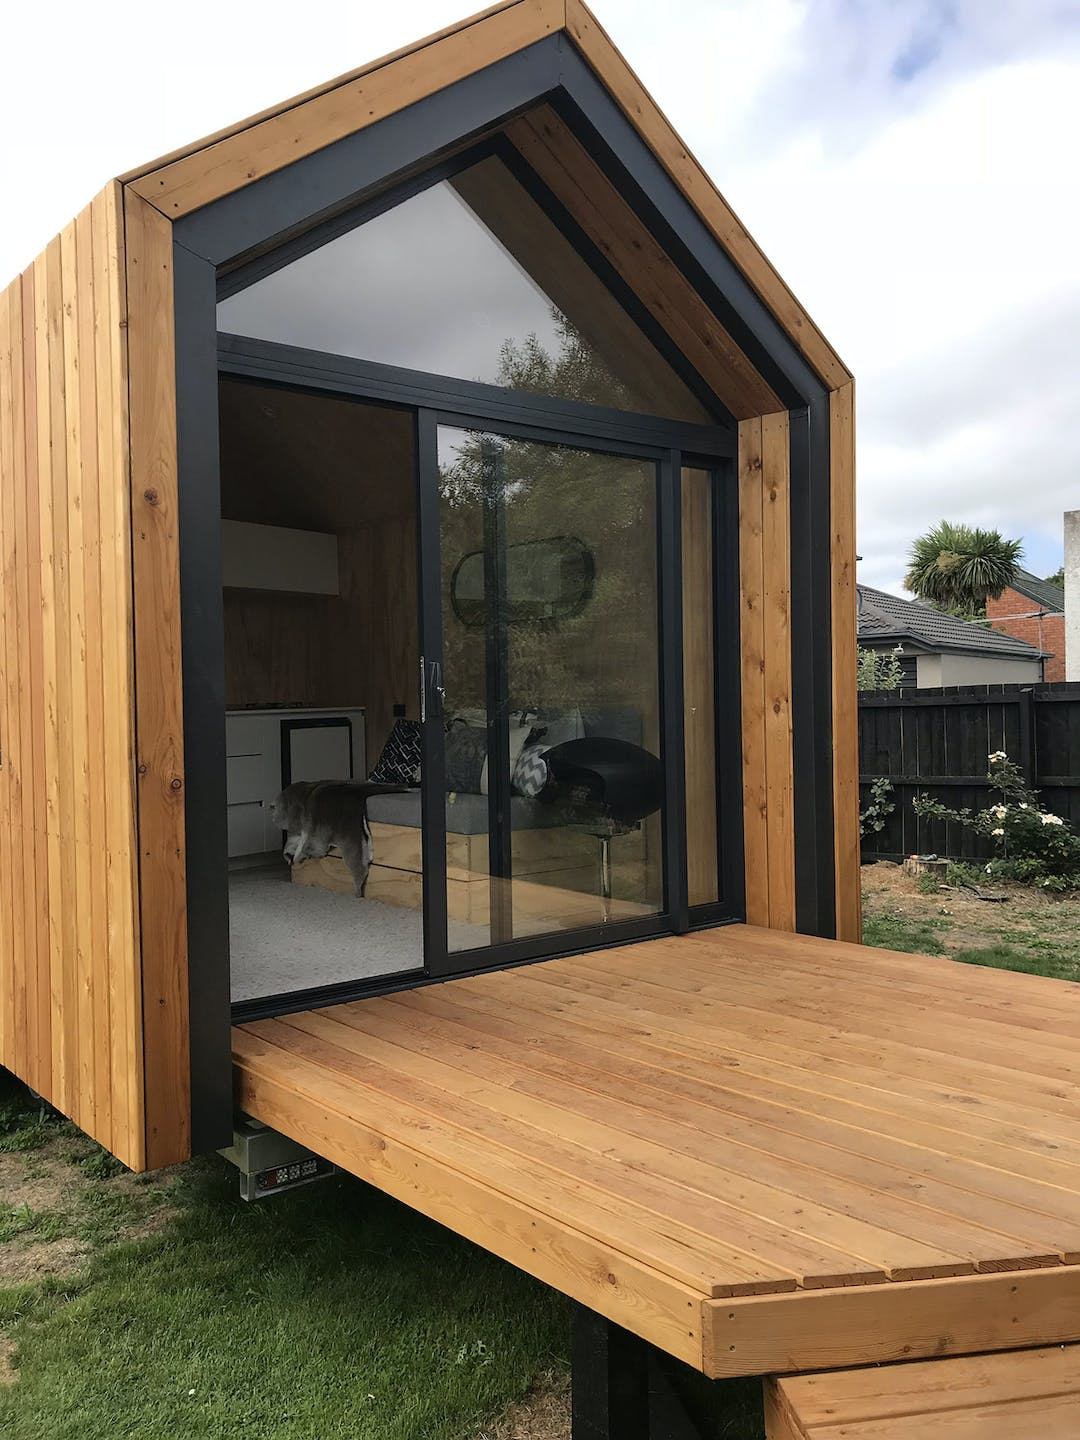 This image shows a tiny house, popularly considered an innovative and sustainable option for future residential accommodation globally.